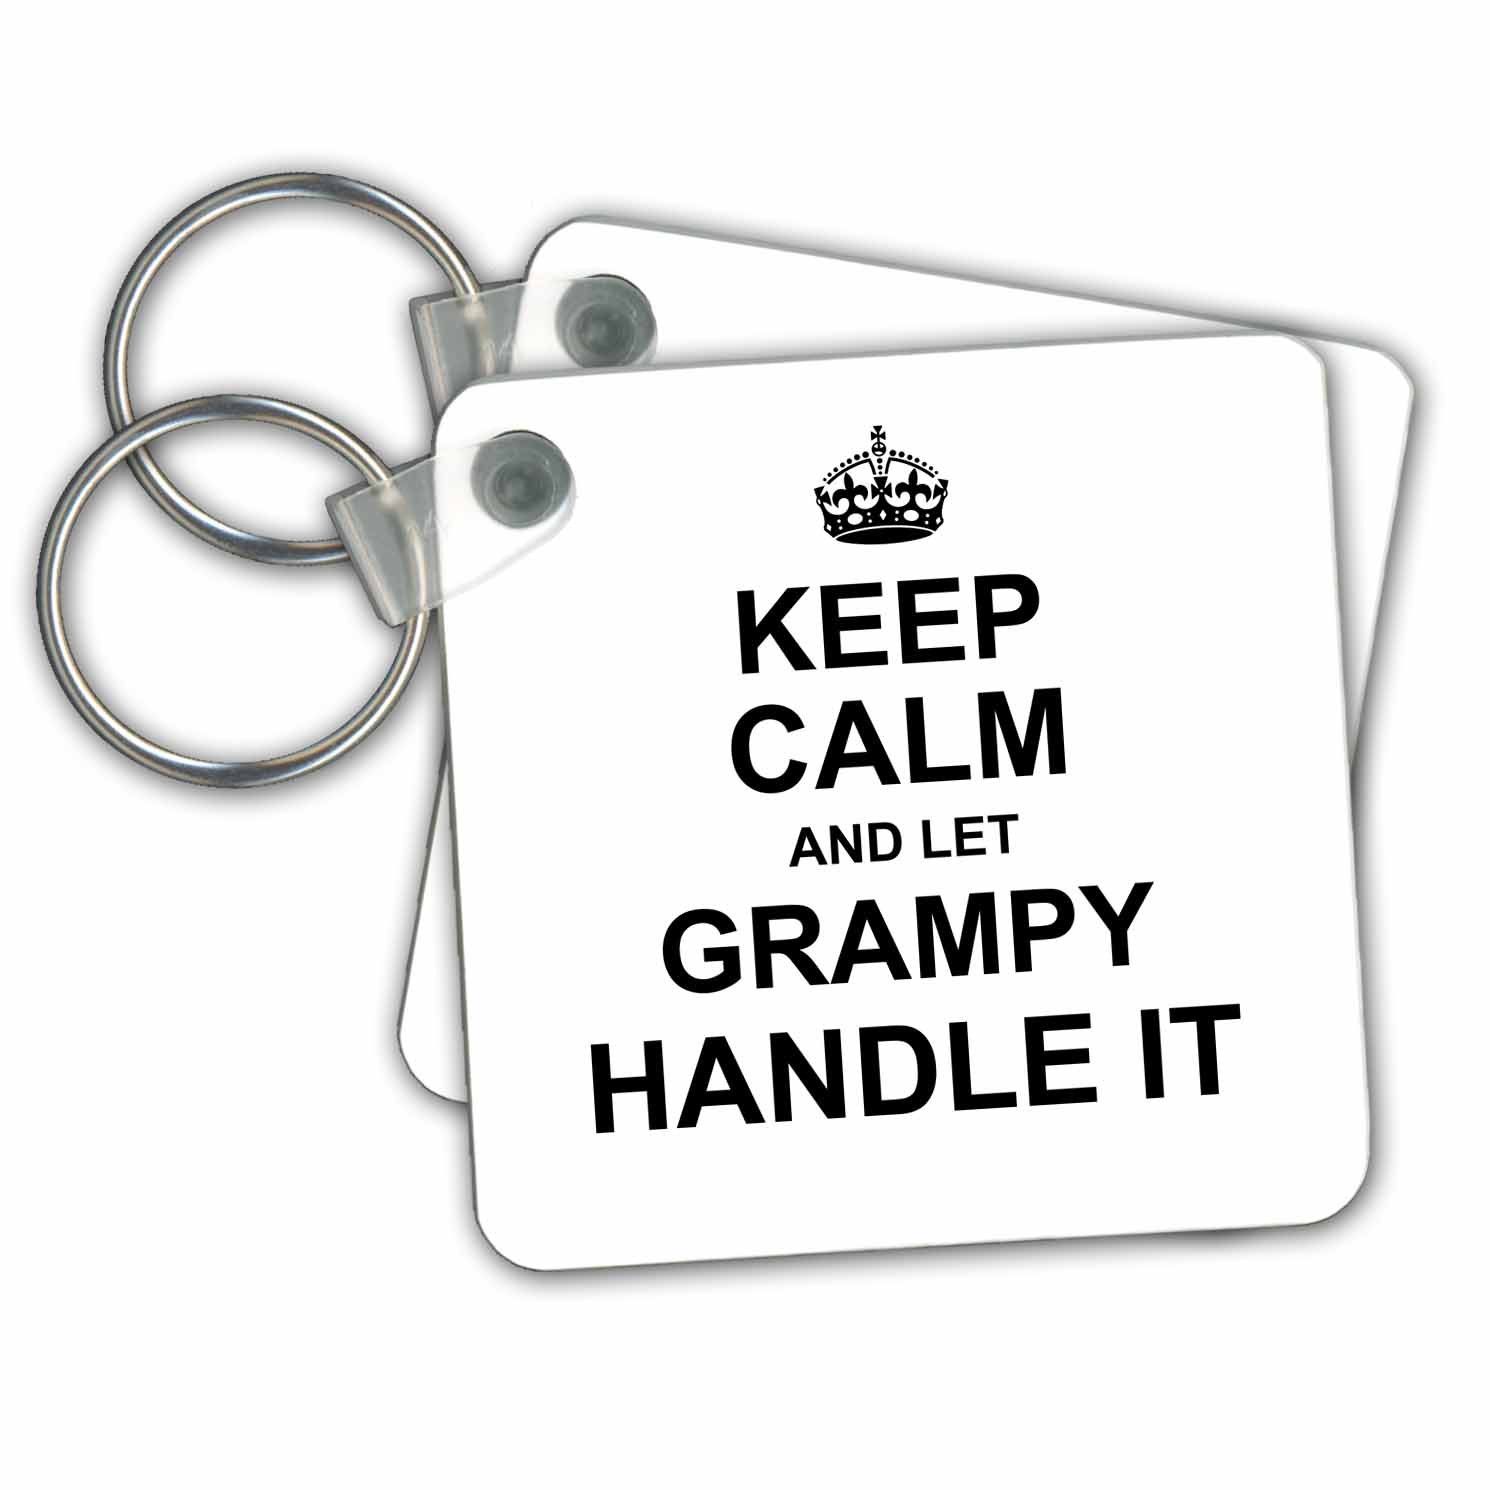 3dRose Keep Calm and Let Grampy Handle It. Fun Funny Grandpa Grandfather Gift - Key Chains, 2.25'' x 2.25'', Set of 2 (kc_233117_1)